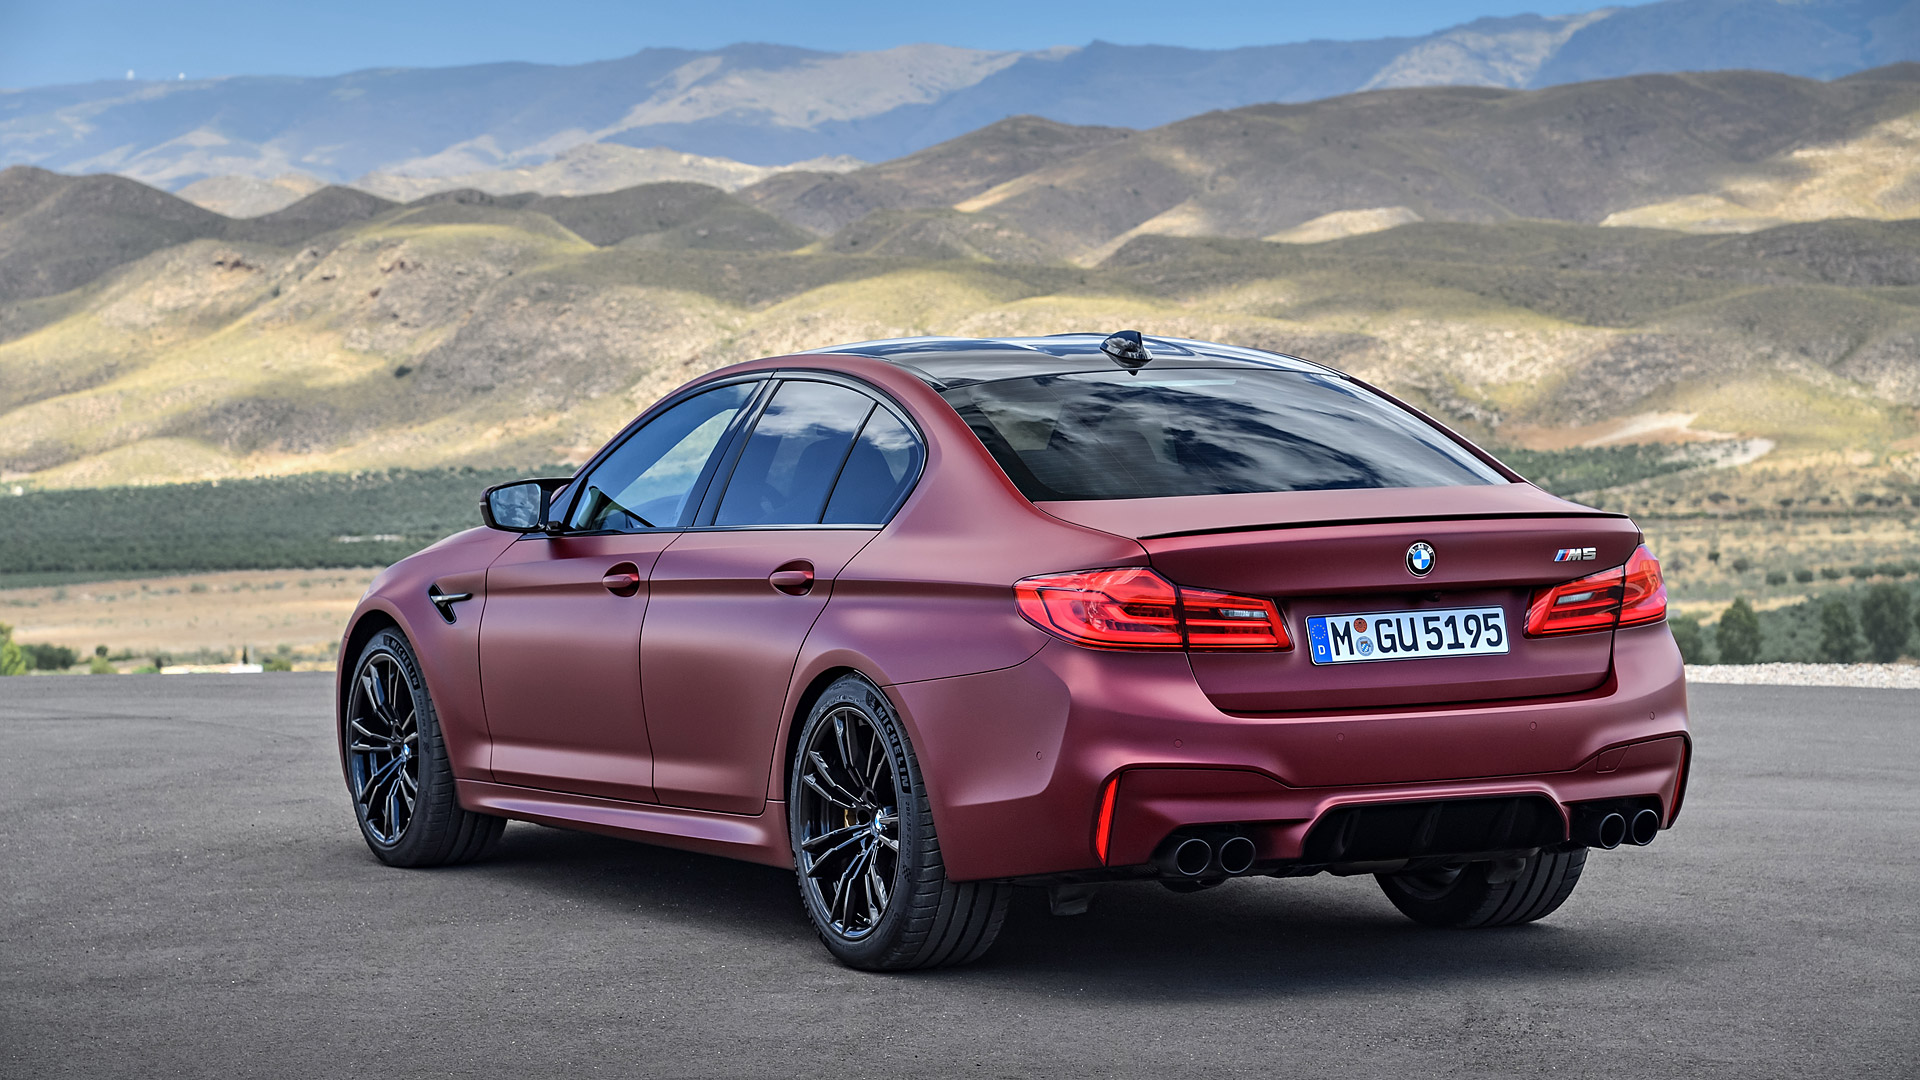 2018 BMW M5 Wallpapers Specs Videos   4K HD   WSupercars 1920x1080